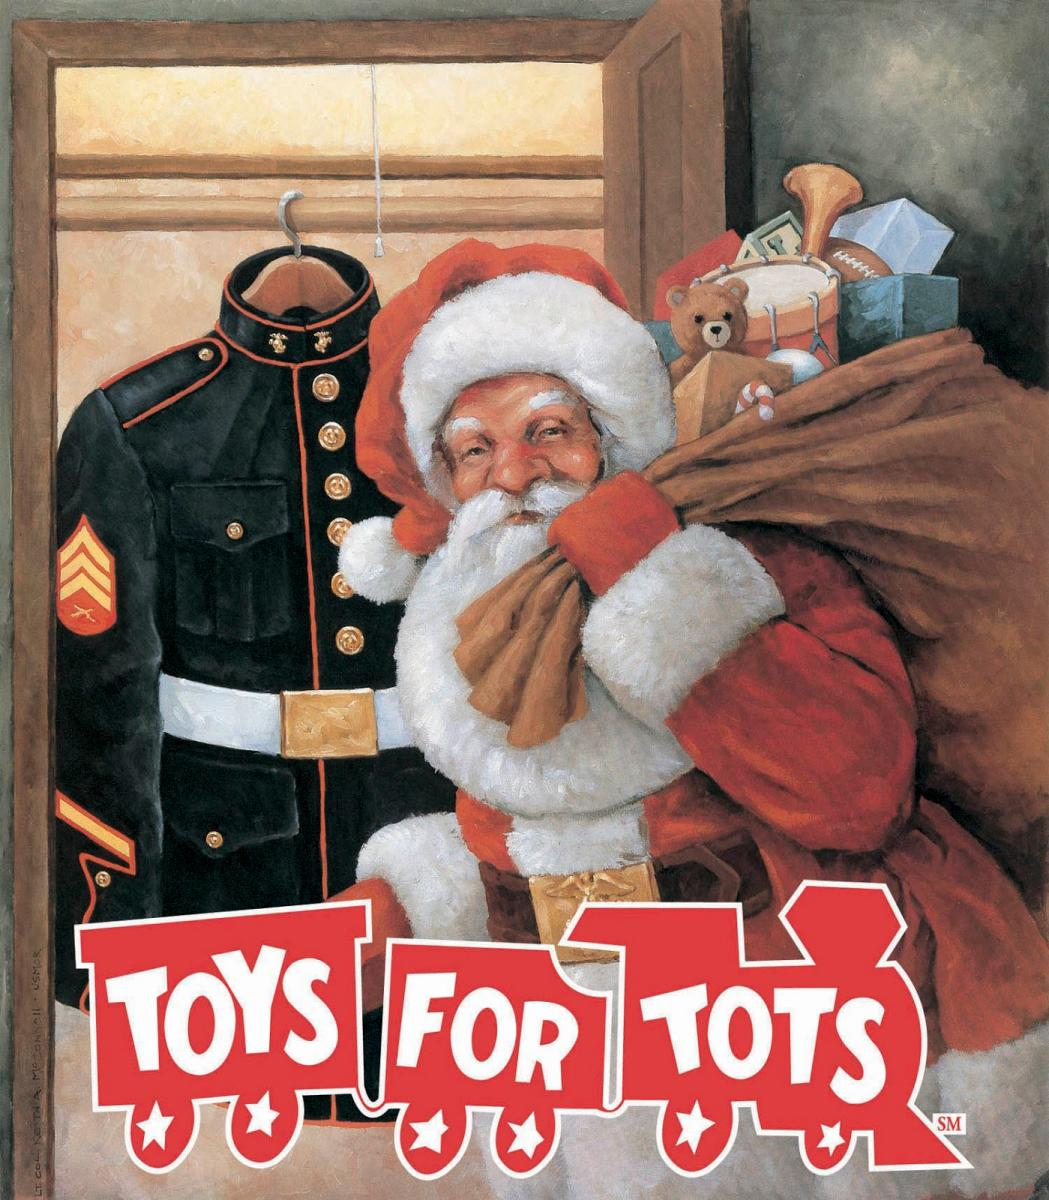 Spa Sale, Toys for Tots Rochester MN, Toys for Tots